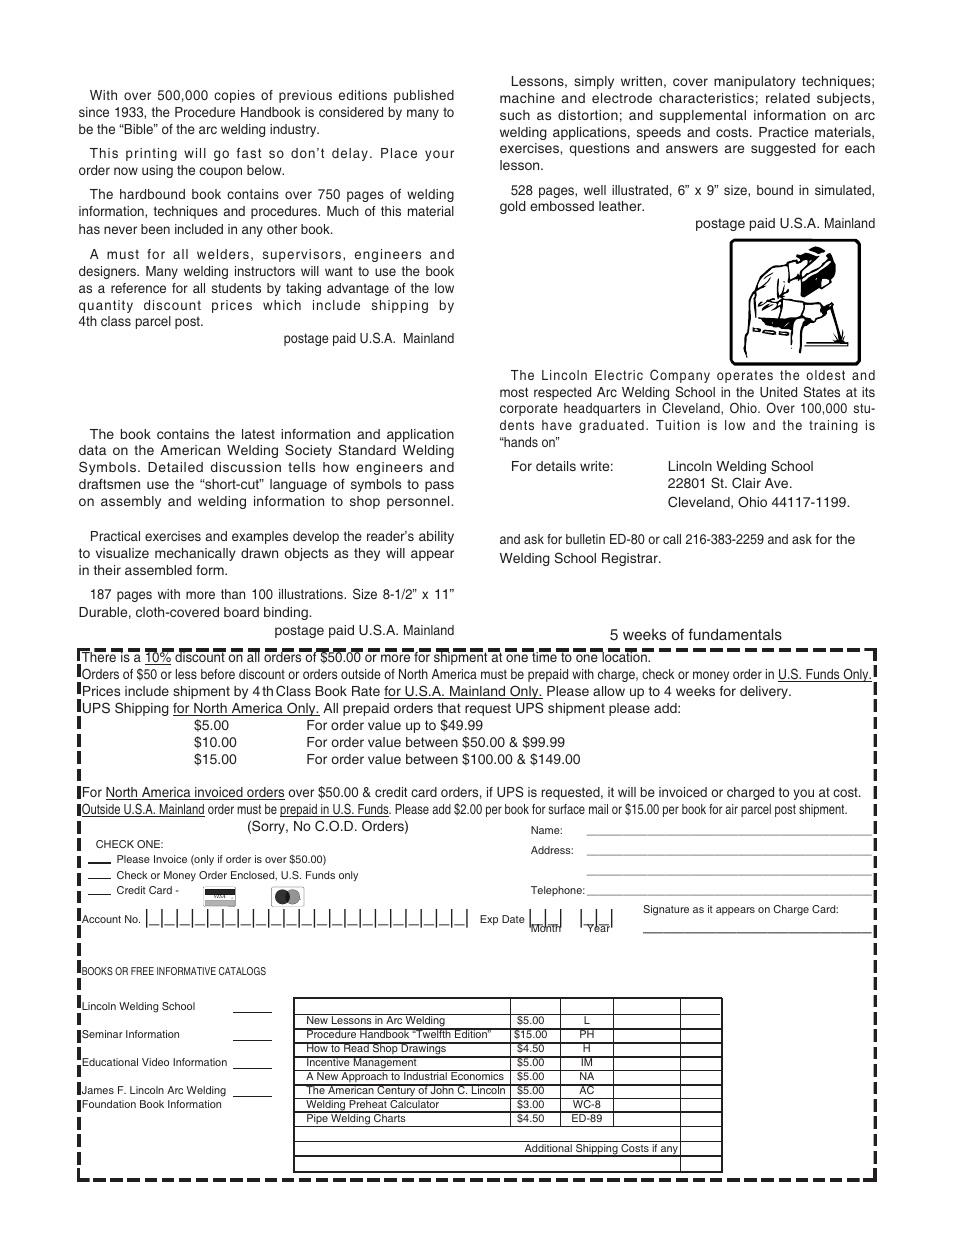 How to read shop drawings, New lessons in arc welding, Need welding  training |